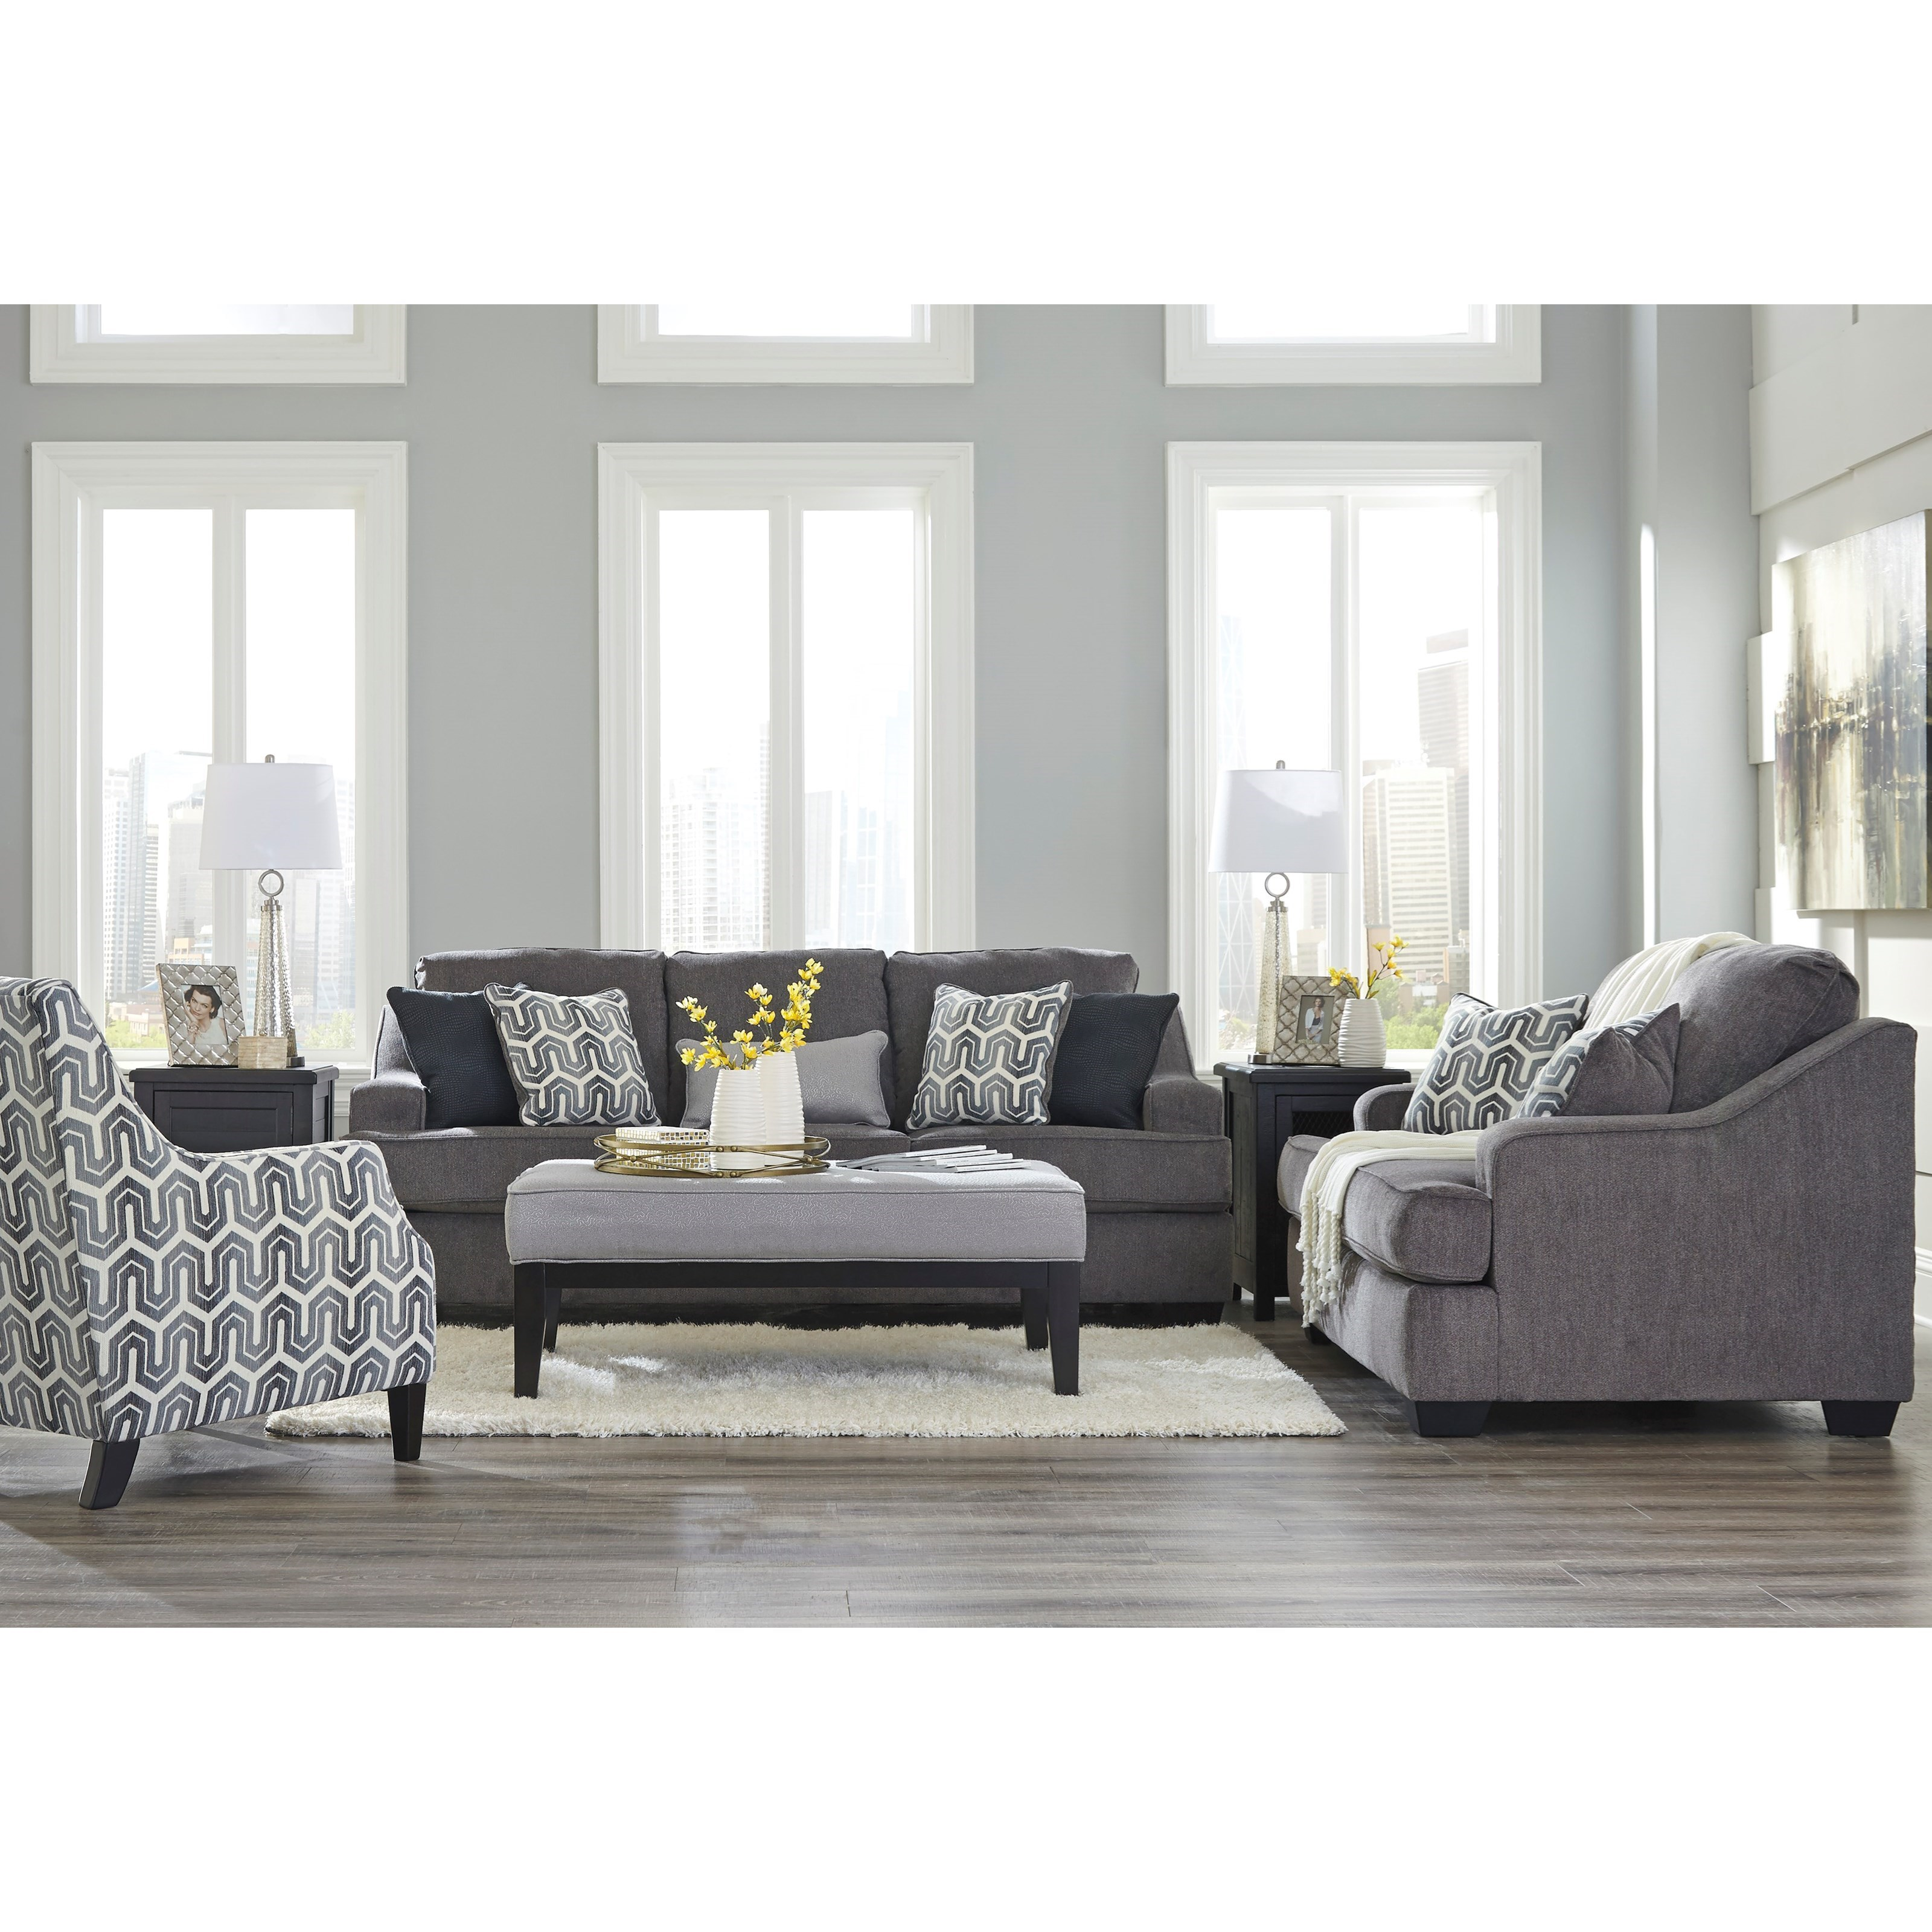 Ashley Home Stores Furniture: Contemporary Sofa With Track Arms By Signature Design By